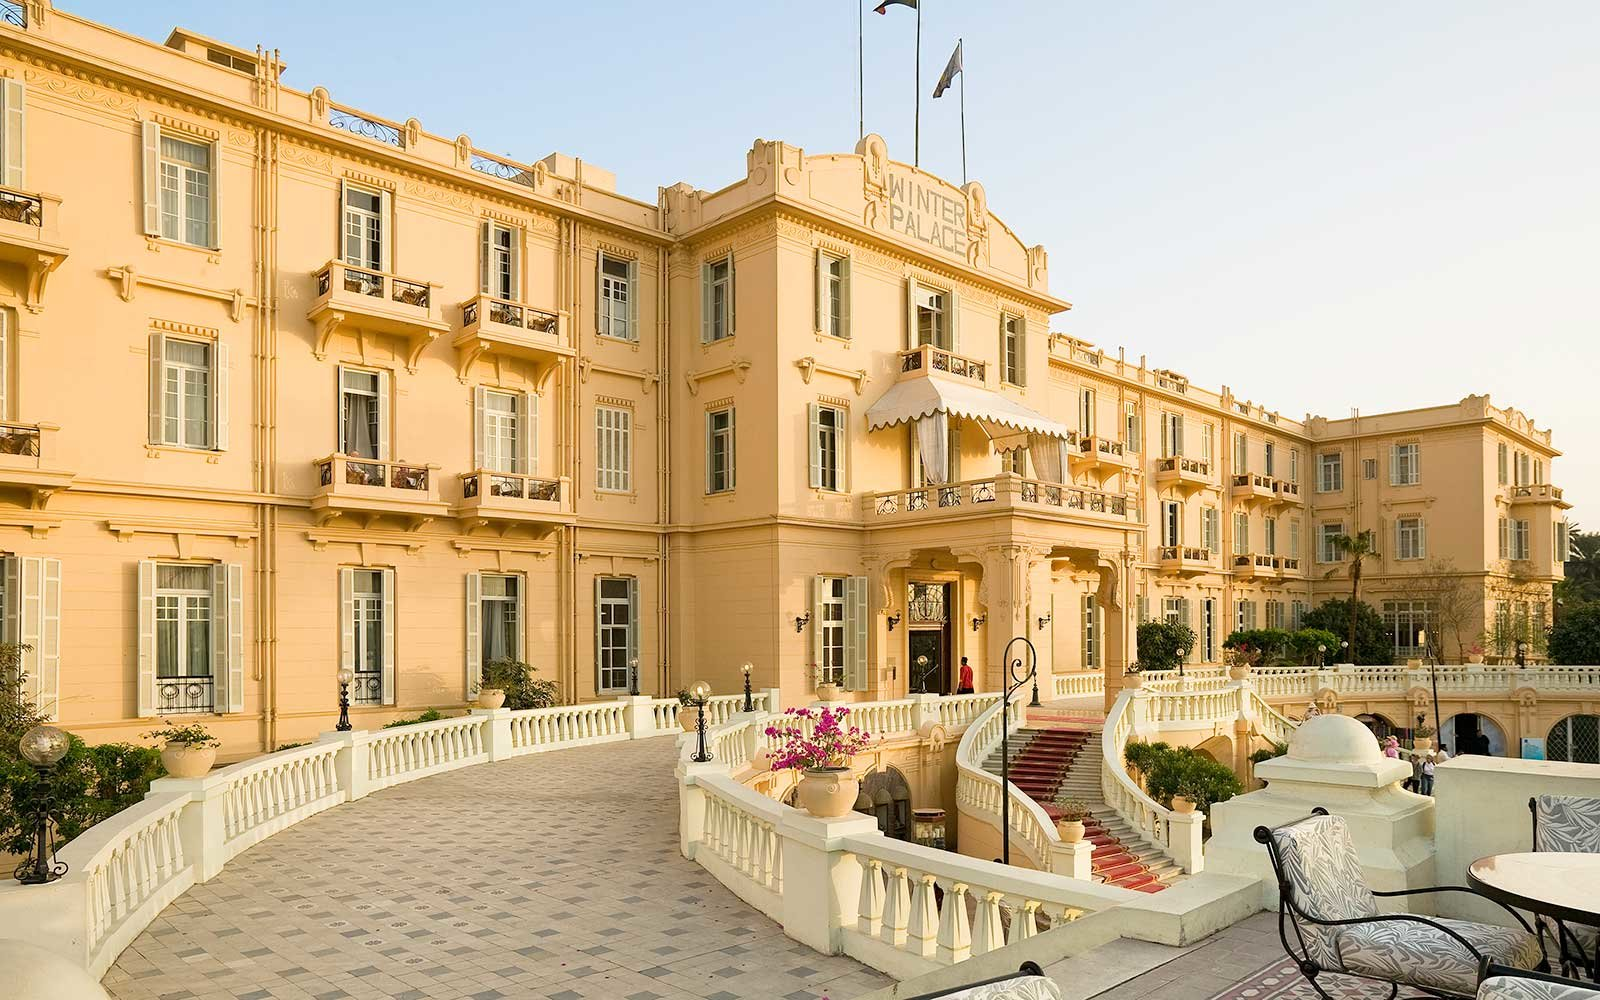 5. Sofitel Winter Palace, Luxor, Egypt